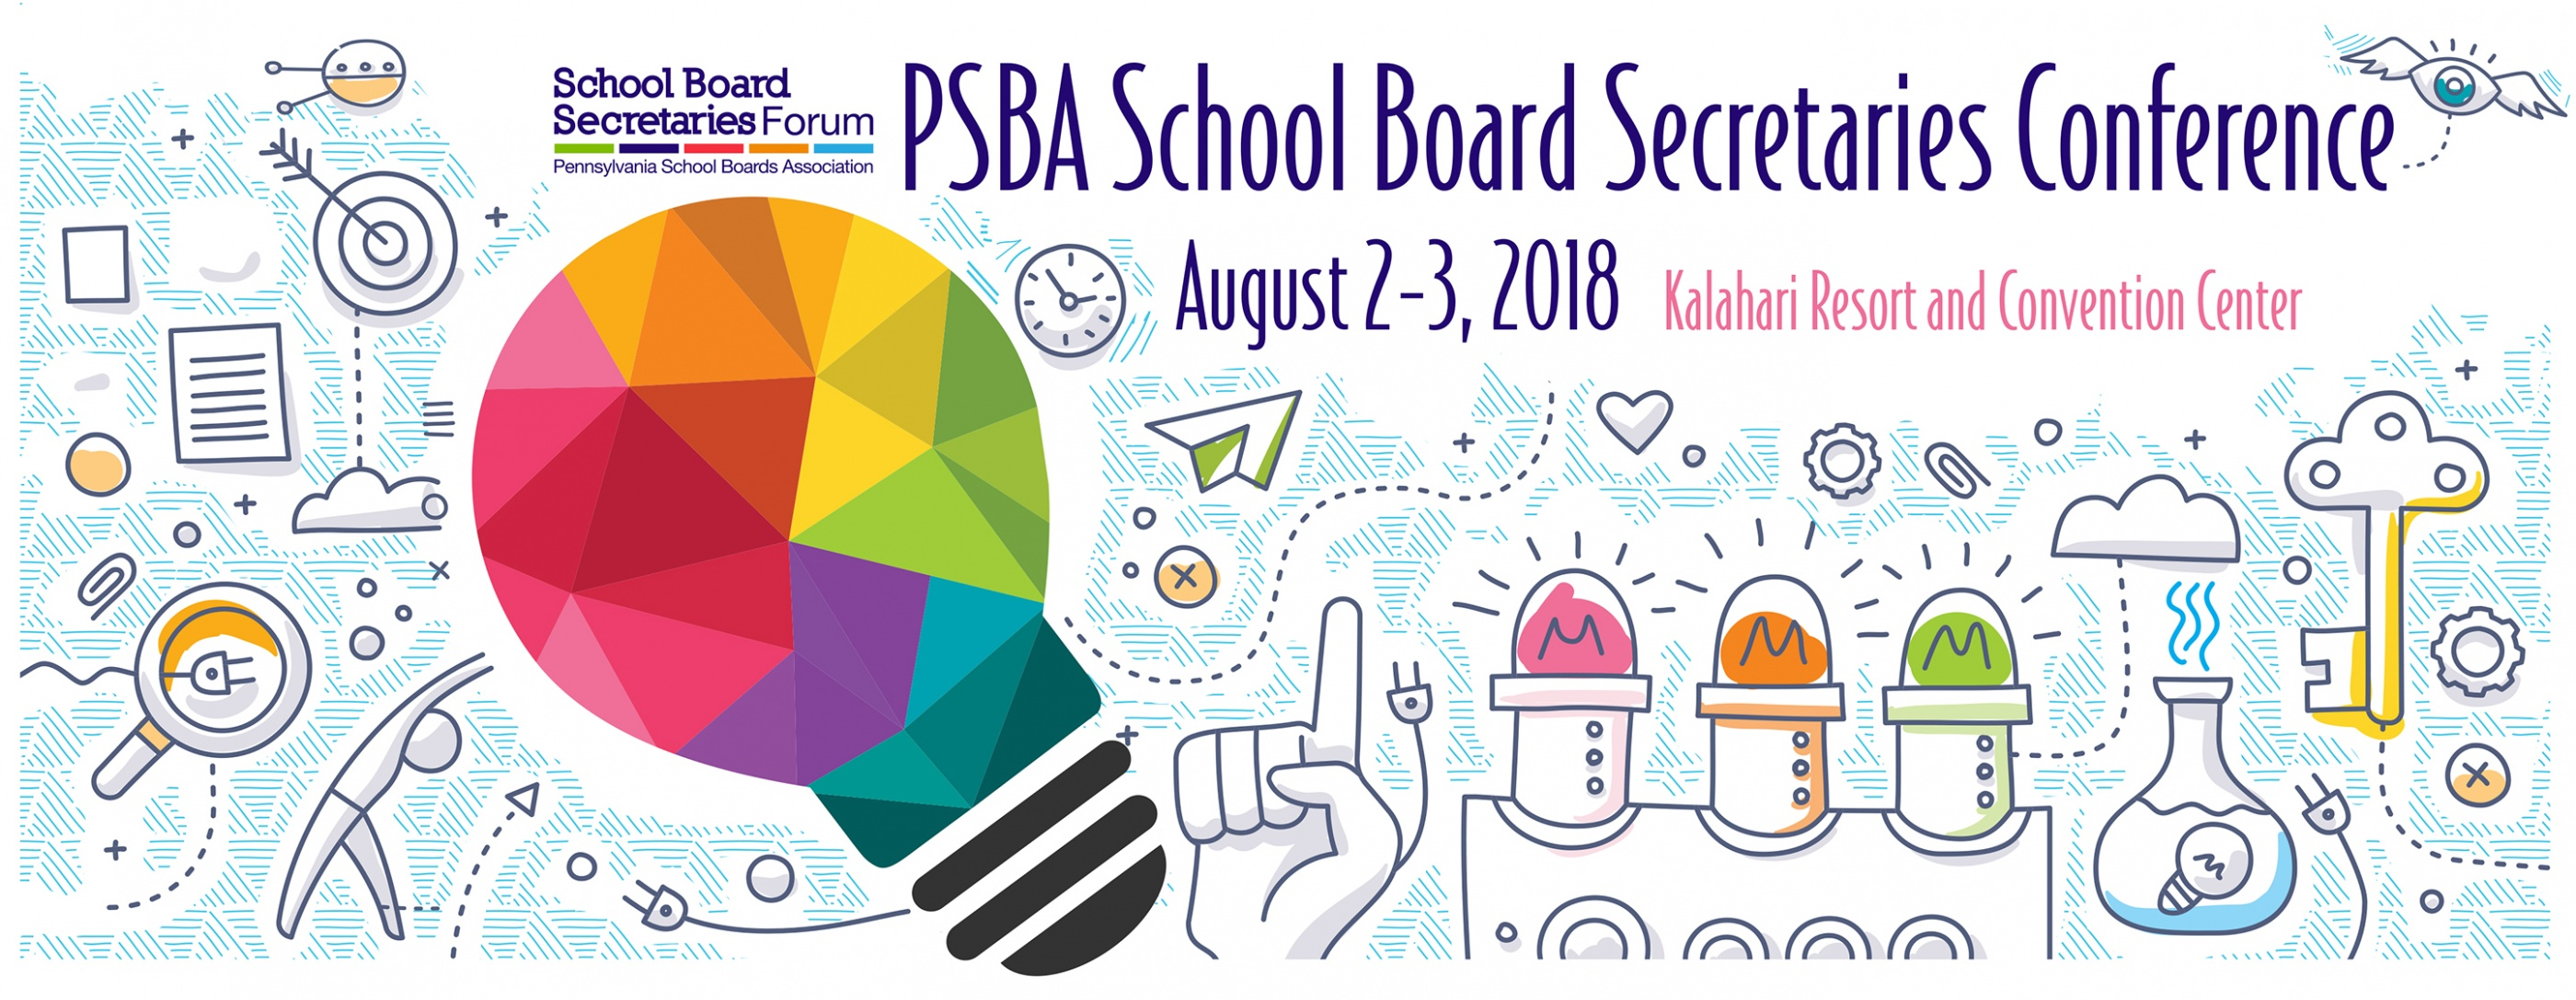 School Board Secretaries Conference: New date, new location!